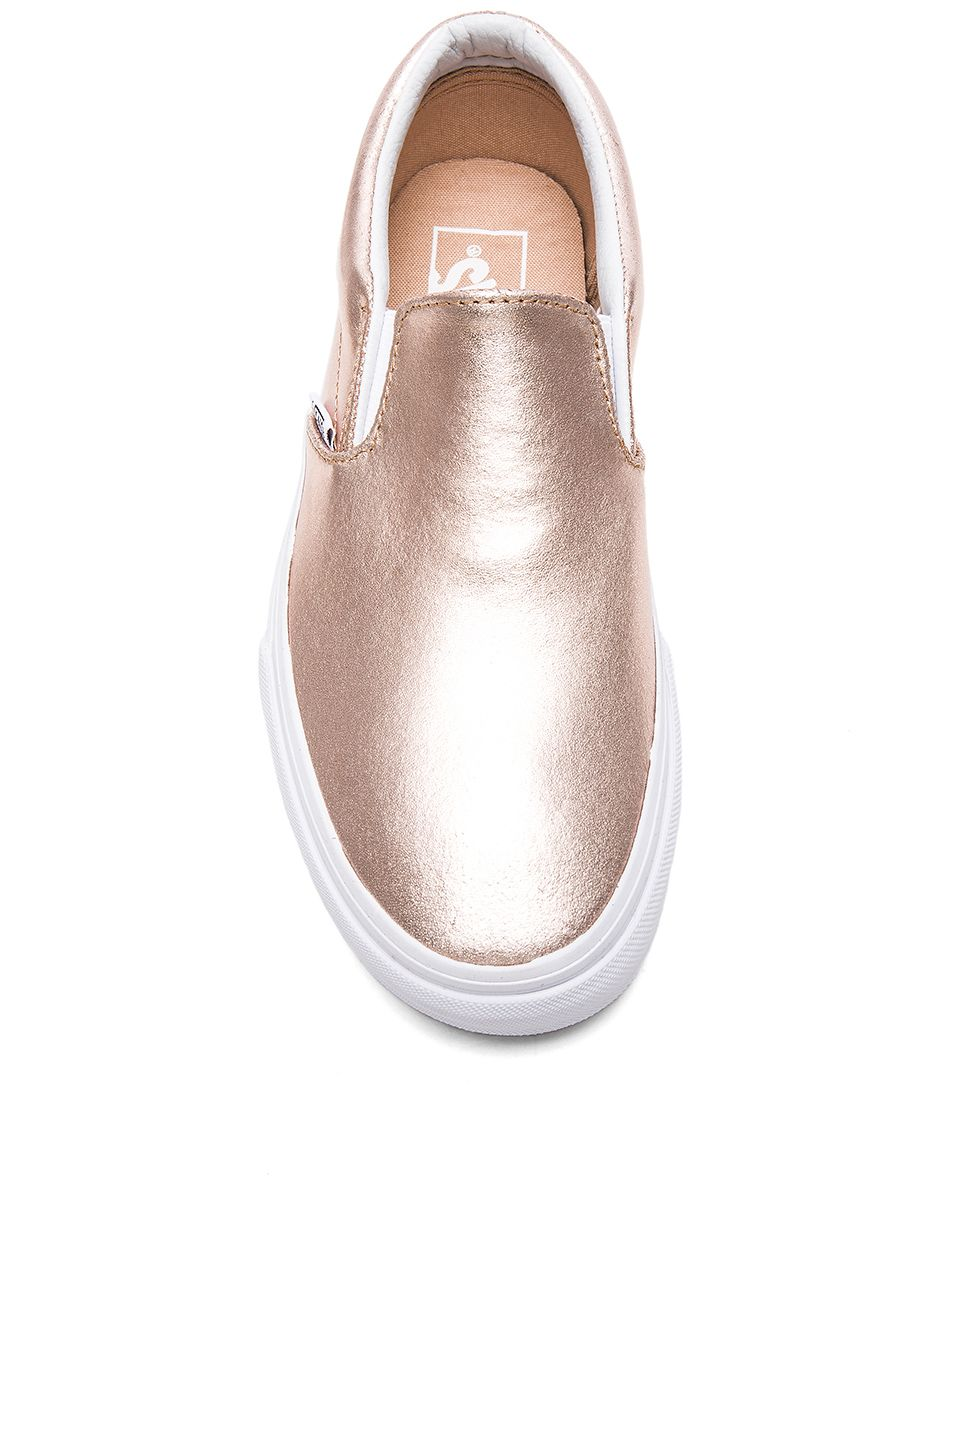 1f4e03c303c Vans Metallic Leather Classic Slip-On in Rose Gold